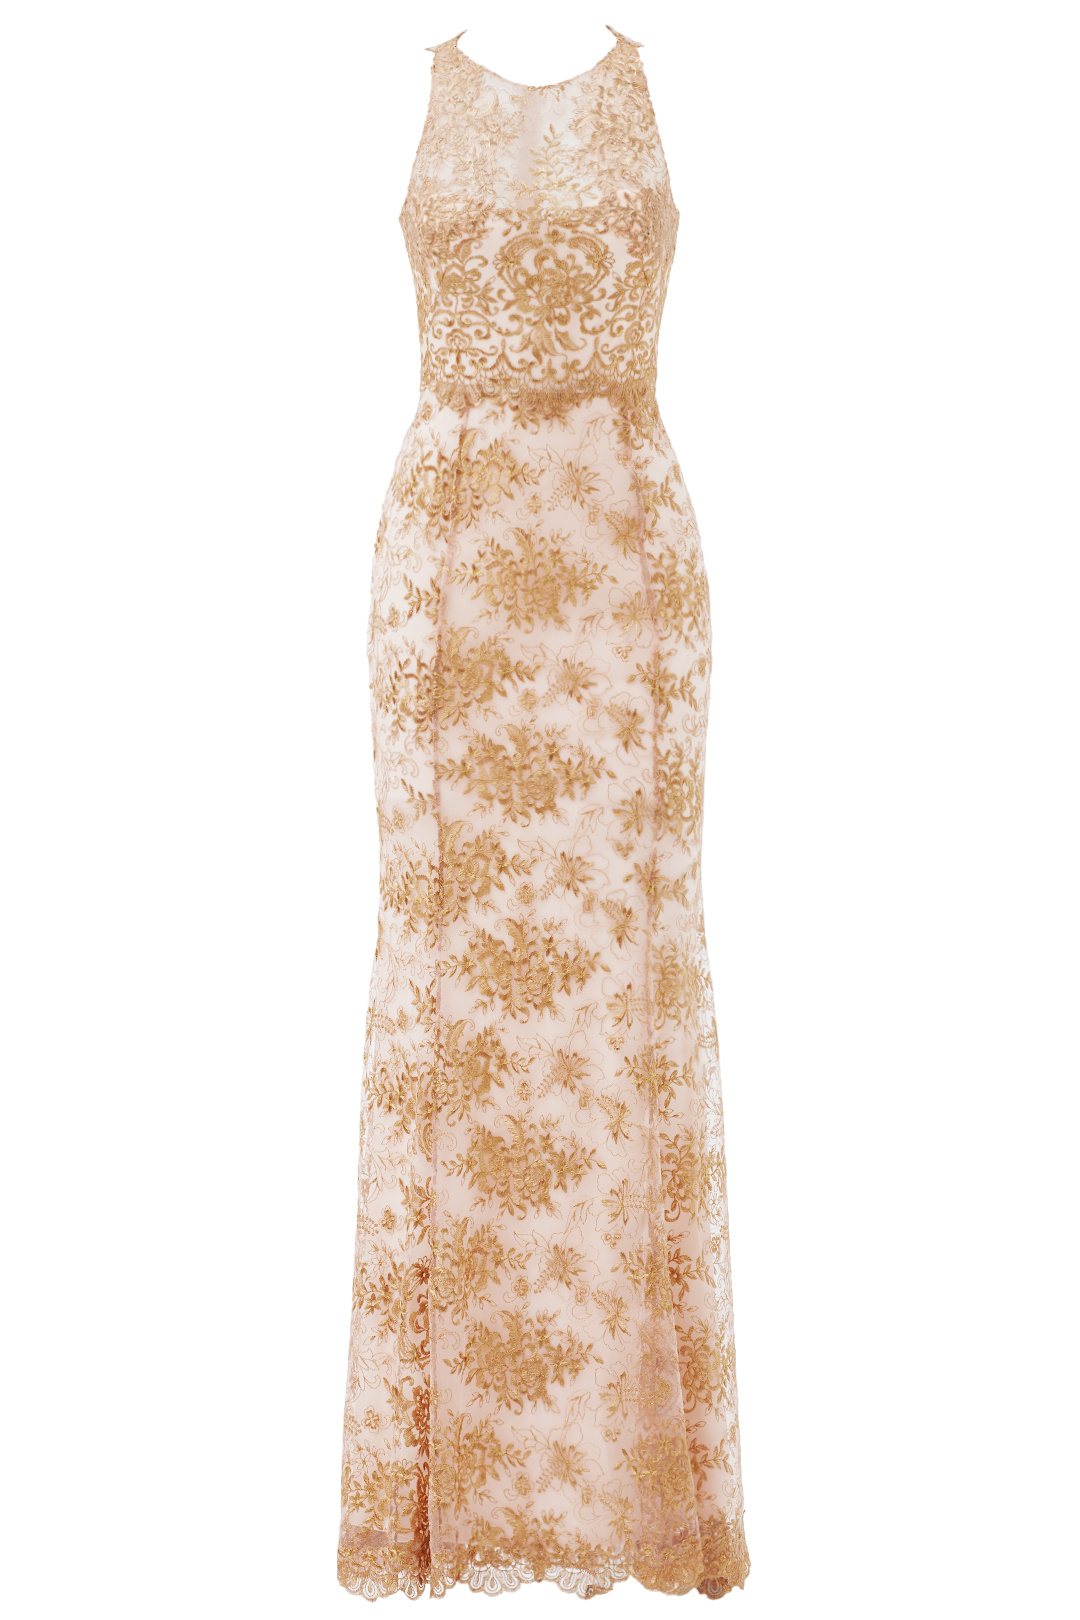 Marchesa Notte Pink Women\'s Size 2 Floral Embroidered Gown Dress ...